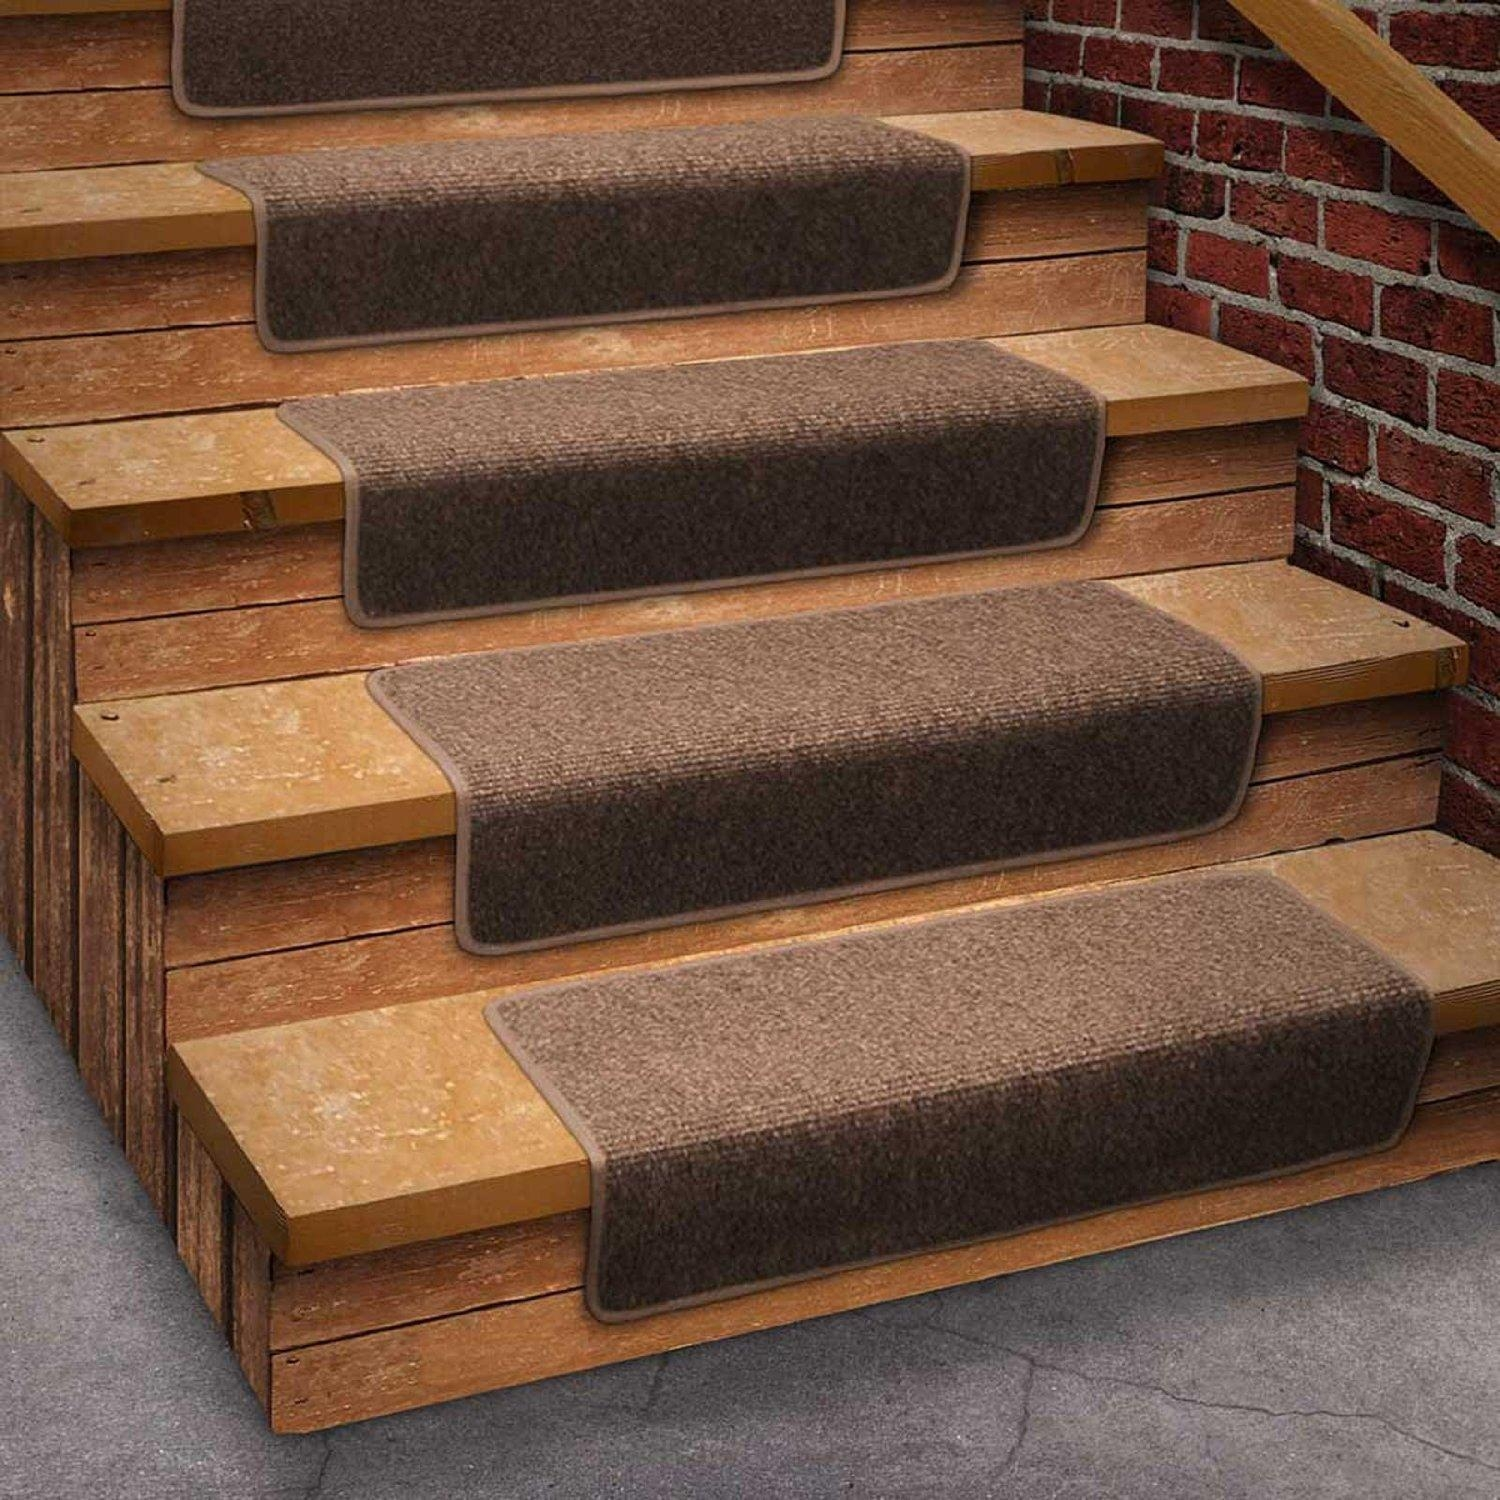 Using Carpet Stair Treads For Safety Reasons Vwho Intended For Stair Tread Rug Covers (#20 of 20)